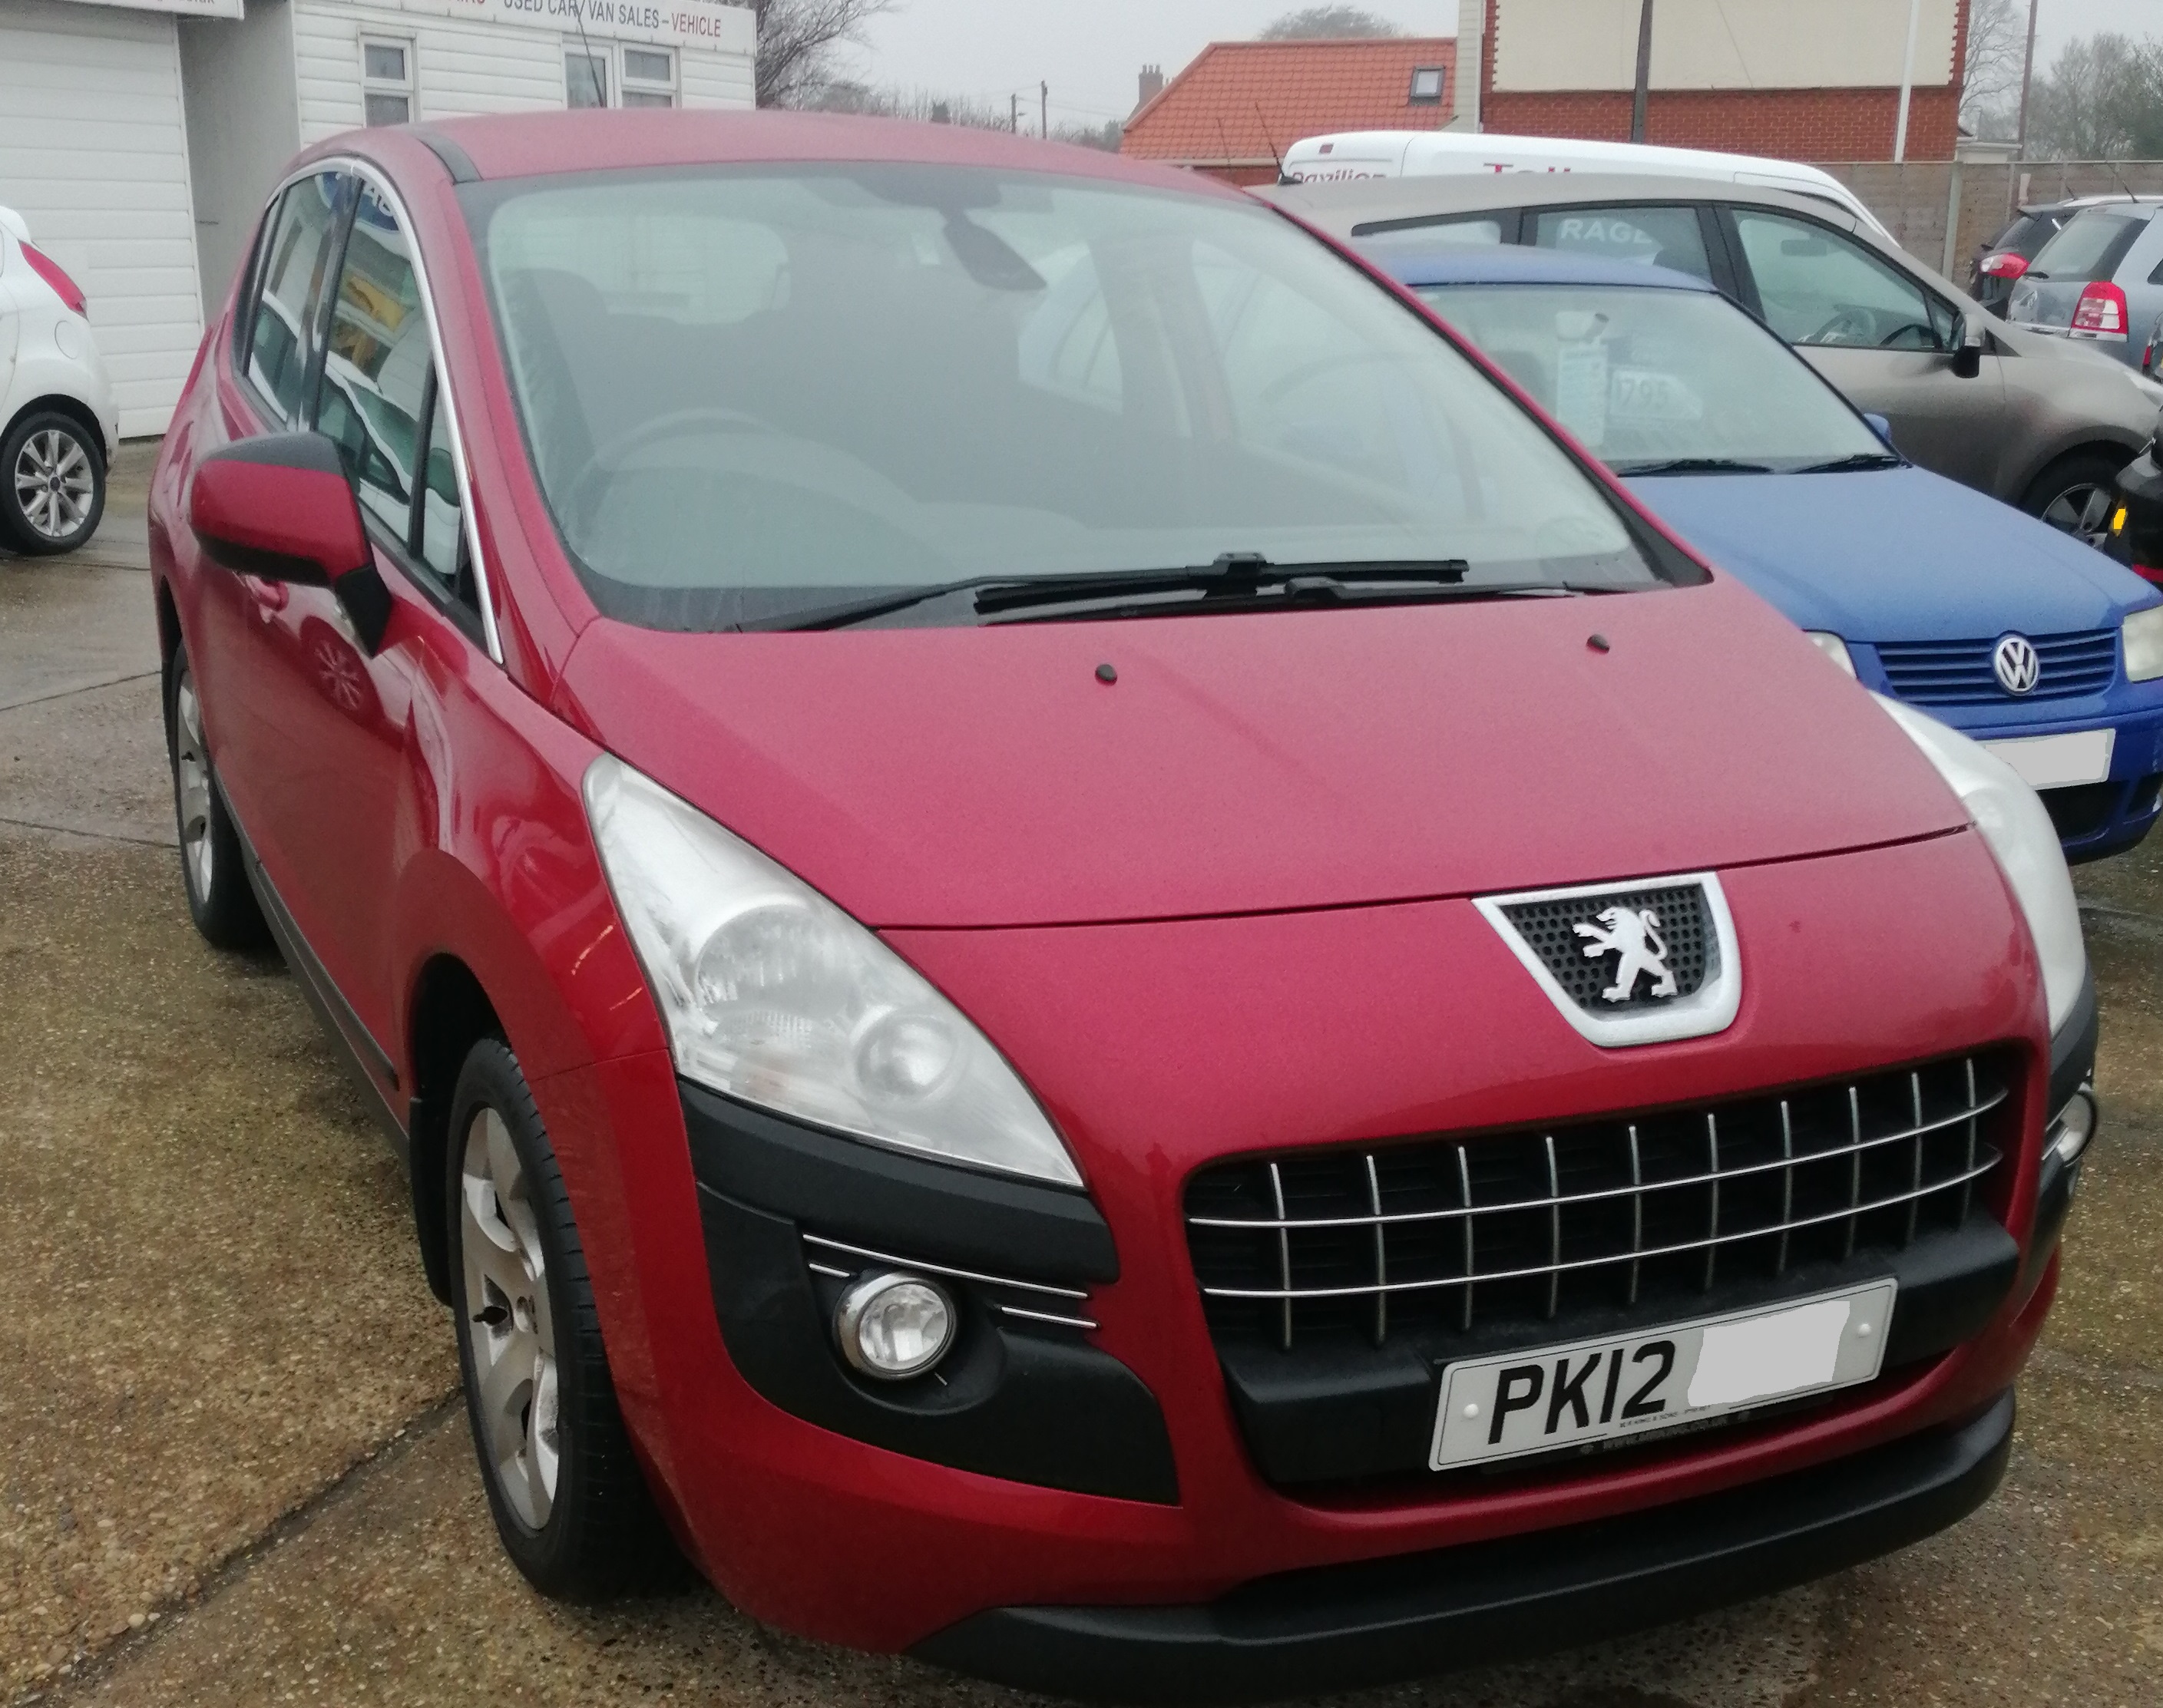 Peugeot 3008 Active HDI  1560cc - Diesel 2012 / 12 76,150 Miles  Service History  Spare Key £125 per year Road Tax £4495